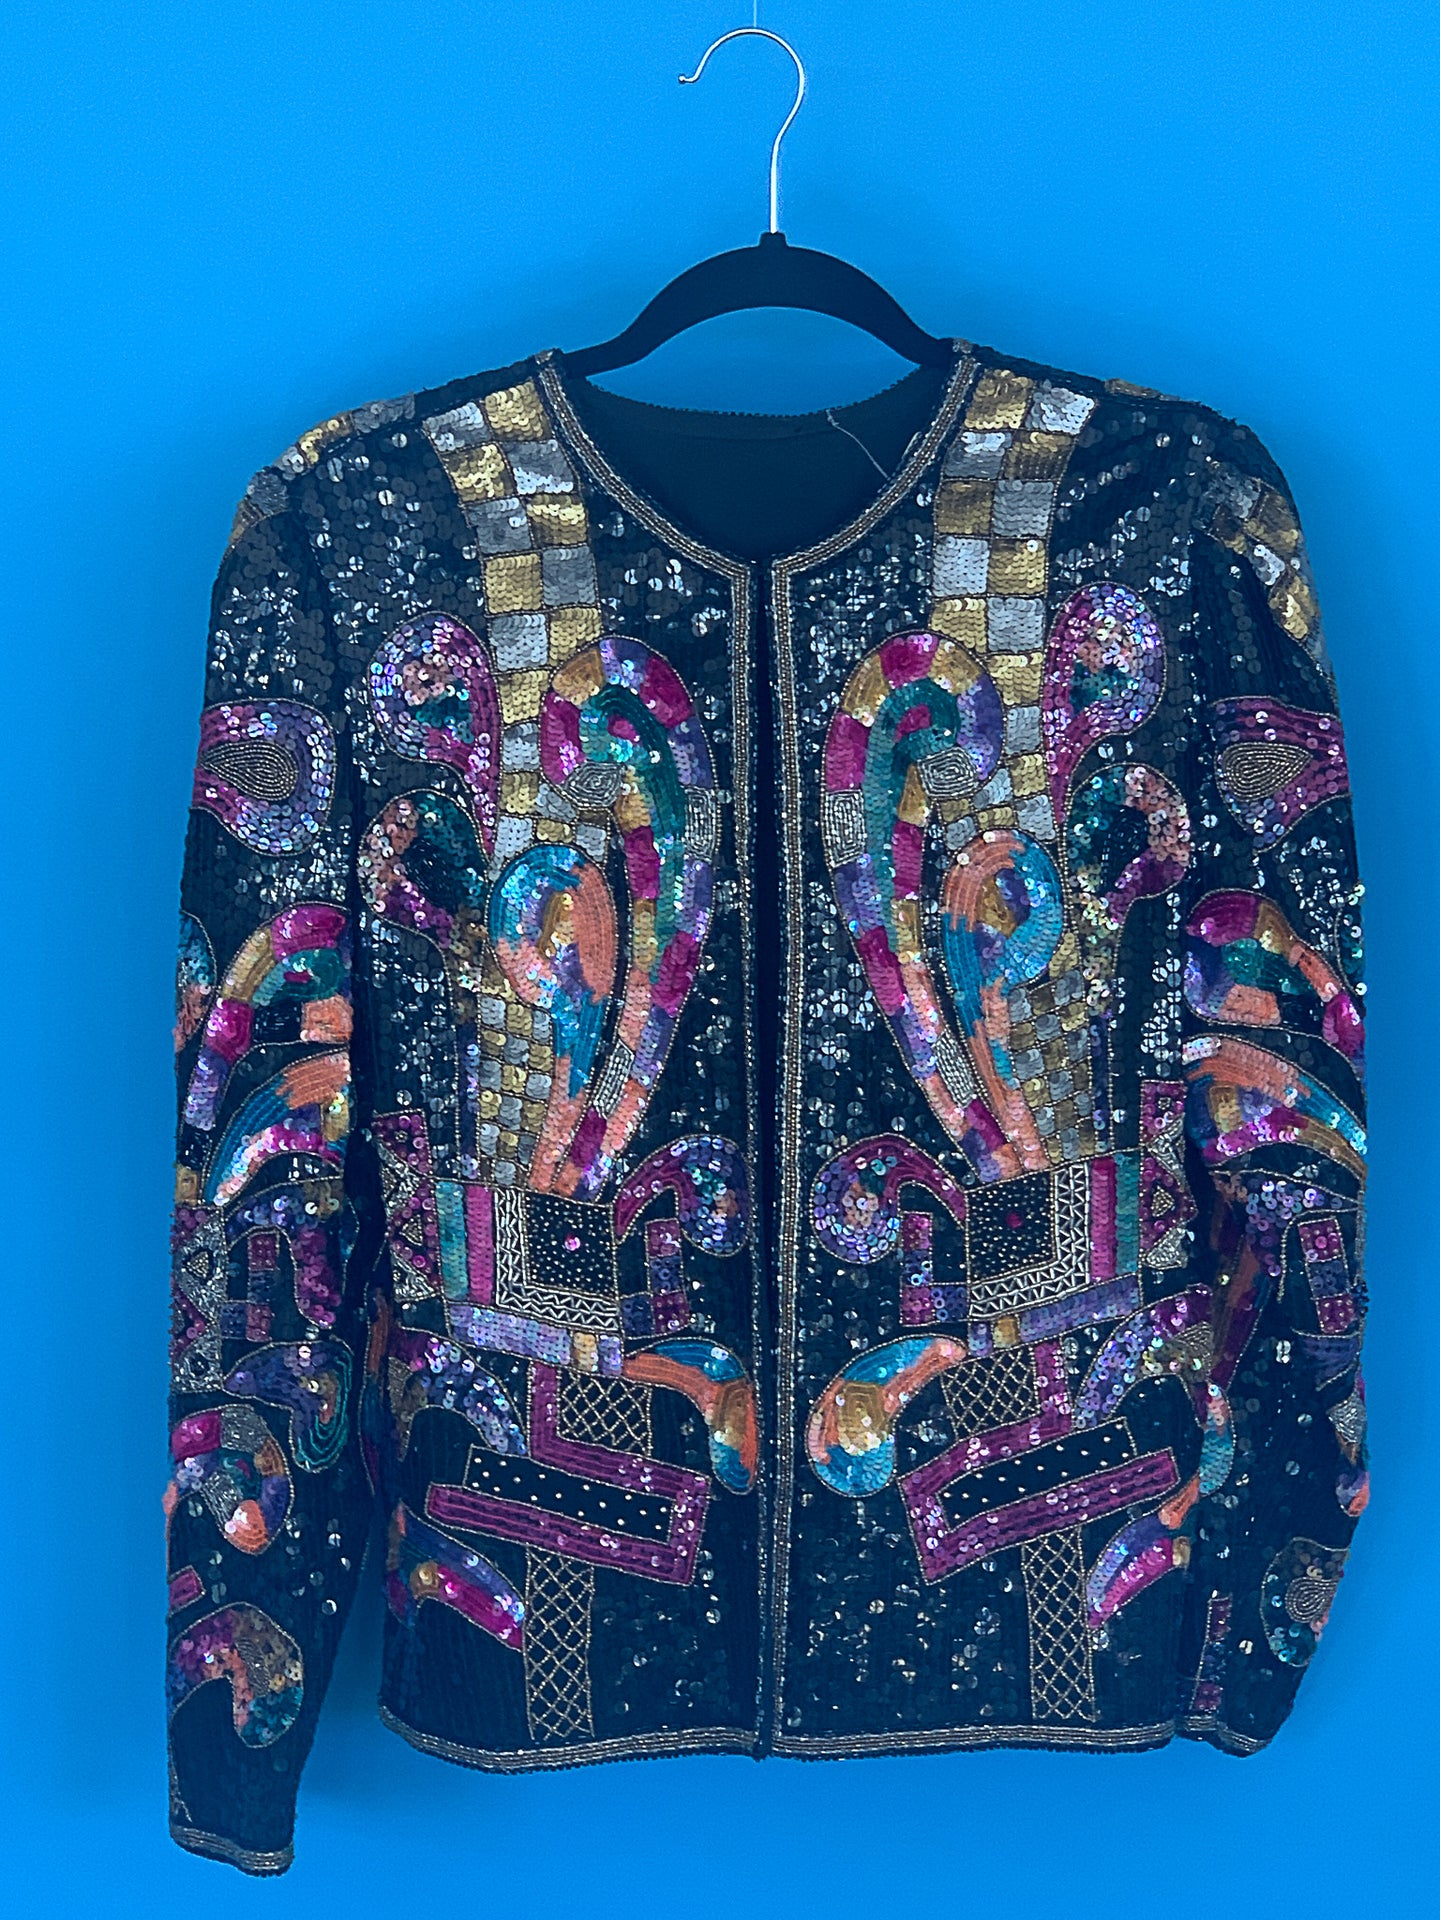 Blanche- 1990s Multicolored Sequin Jacket